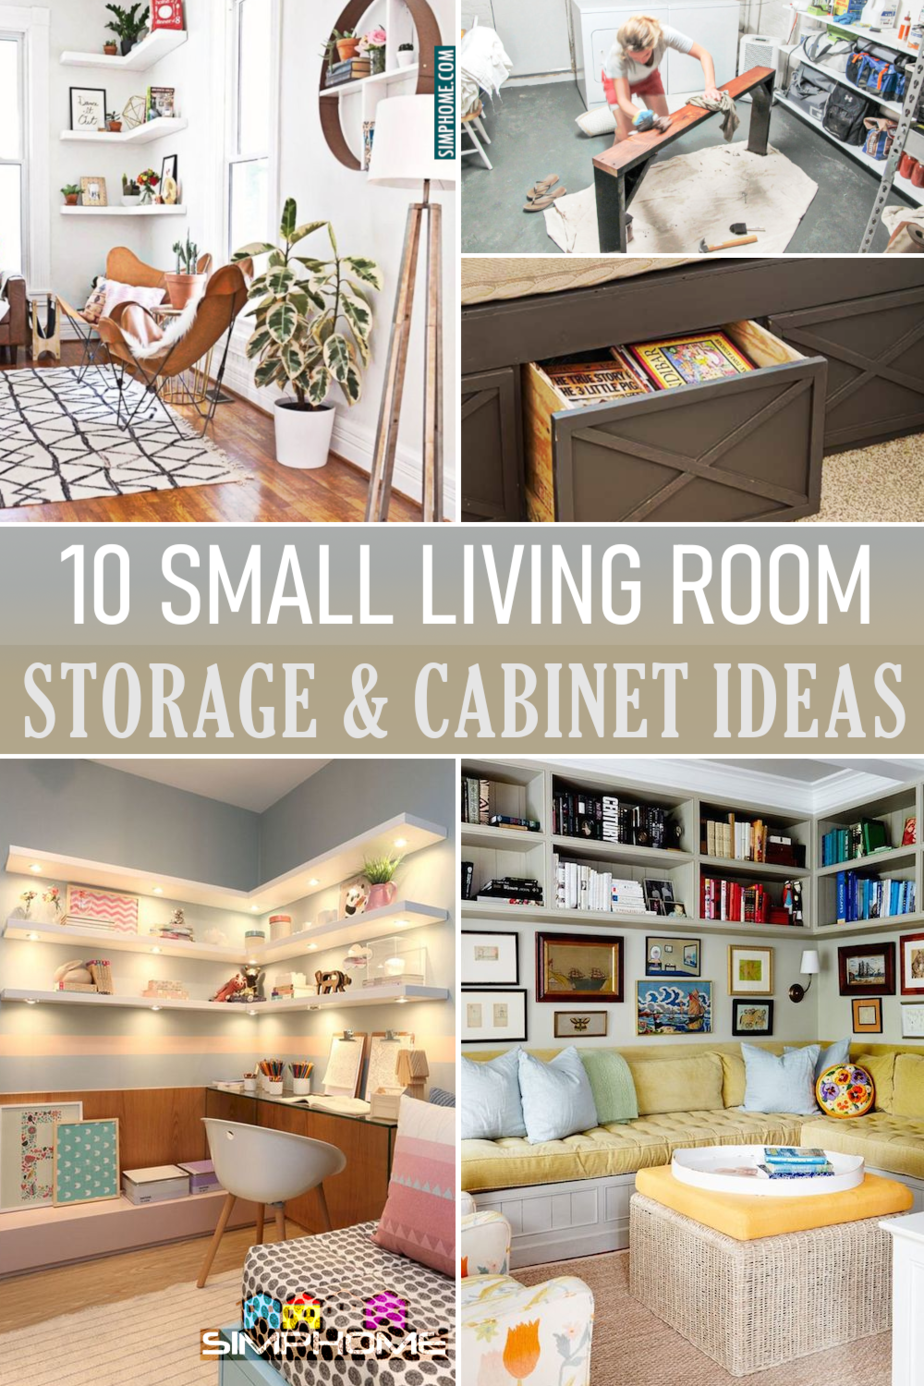 10 small living room storage and cabinet via Simphome.com Featured